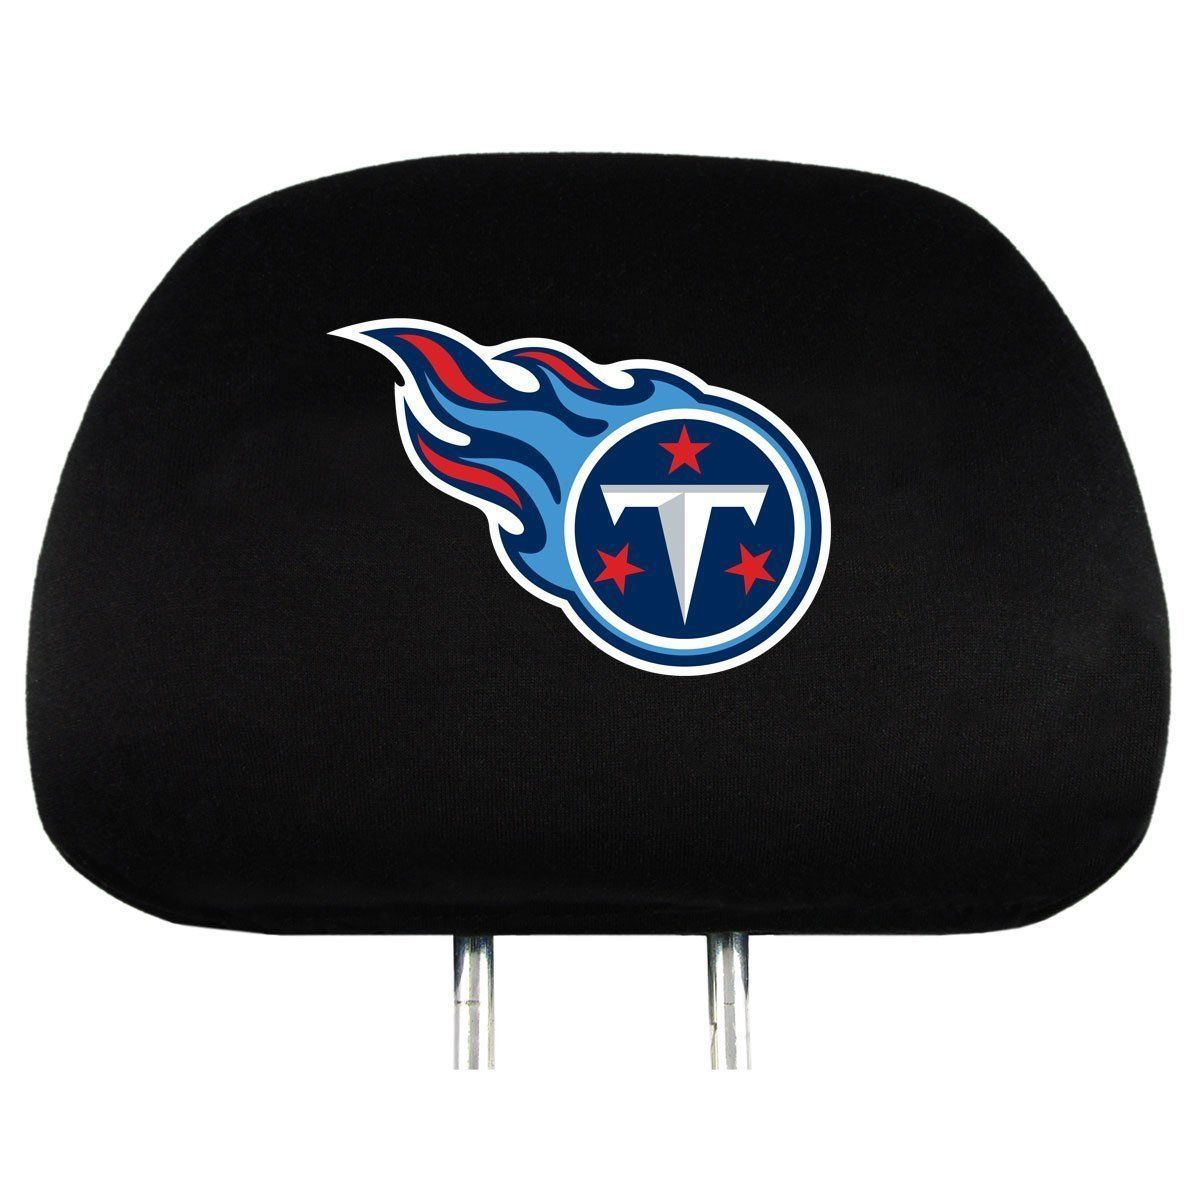 TENNESSEE TITANS CAR AUTO 2 TEAM HEAD REST COVERS NFL FOOTBALL